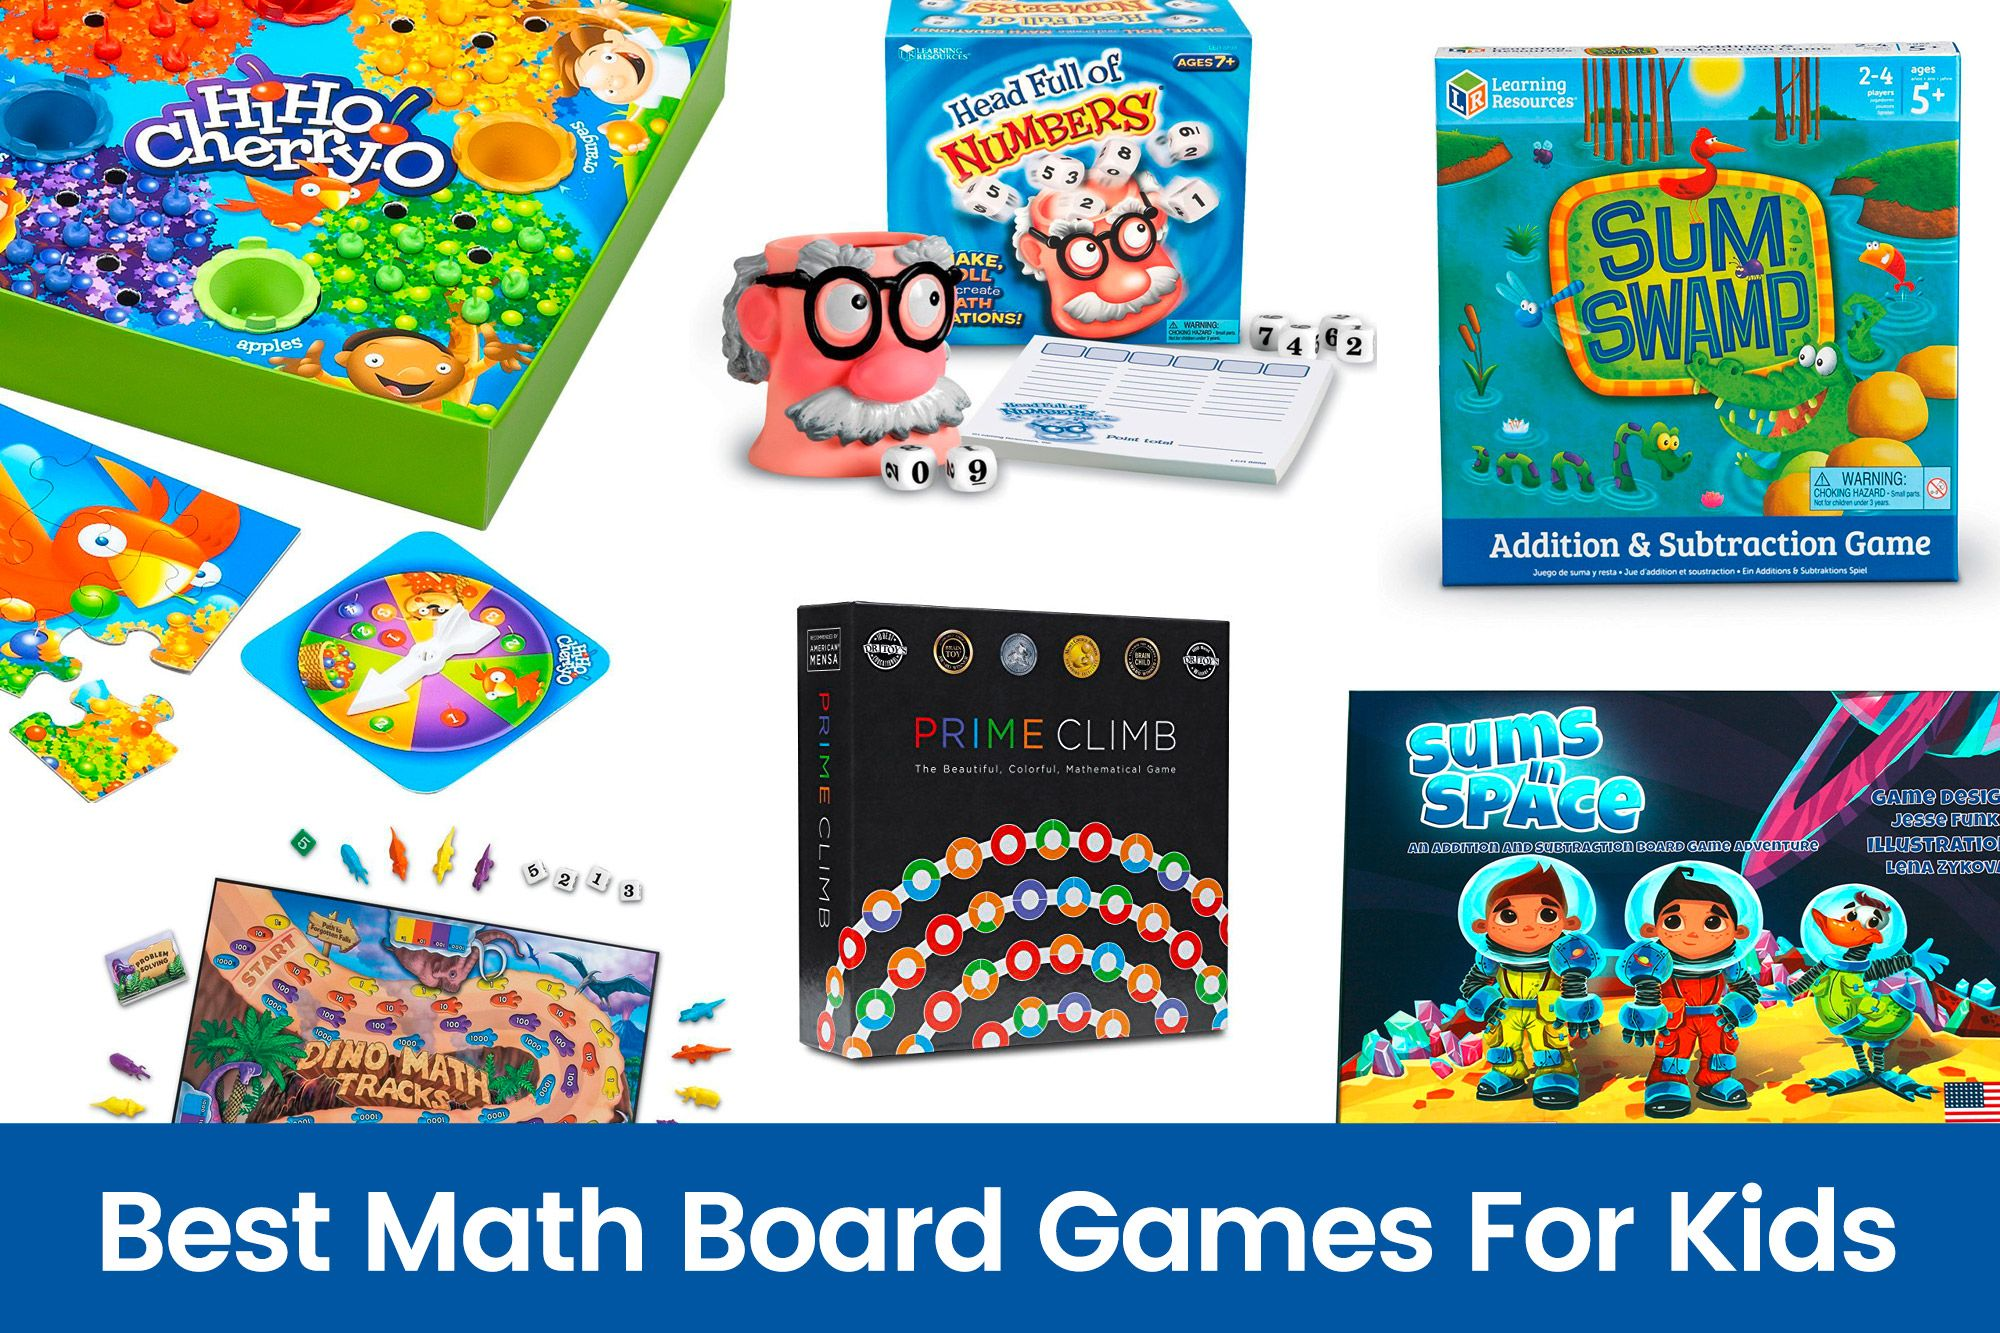 Best Math Board Games For Kids Tech Toys for Kids